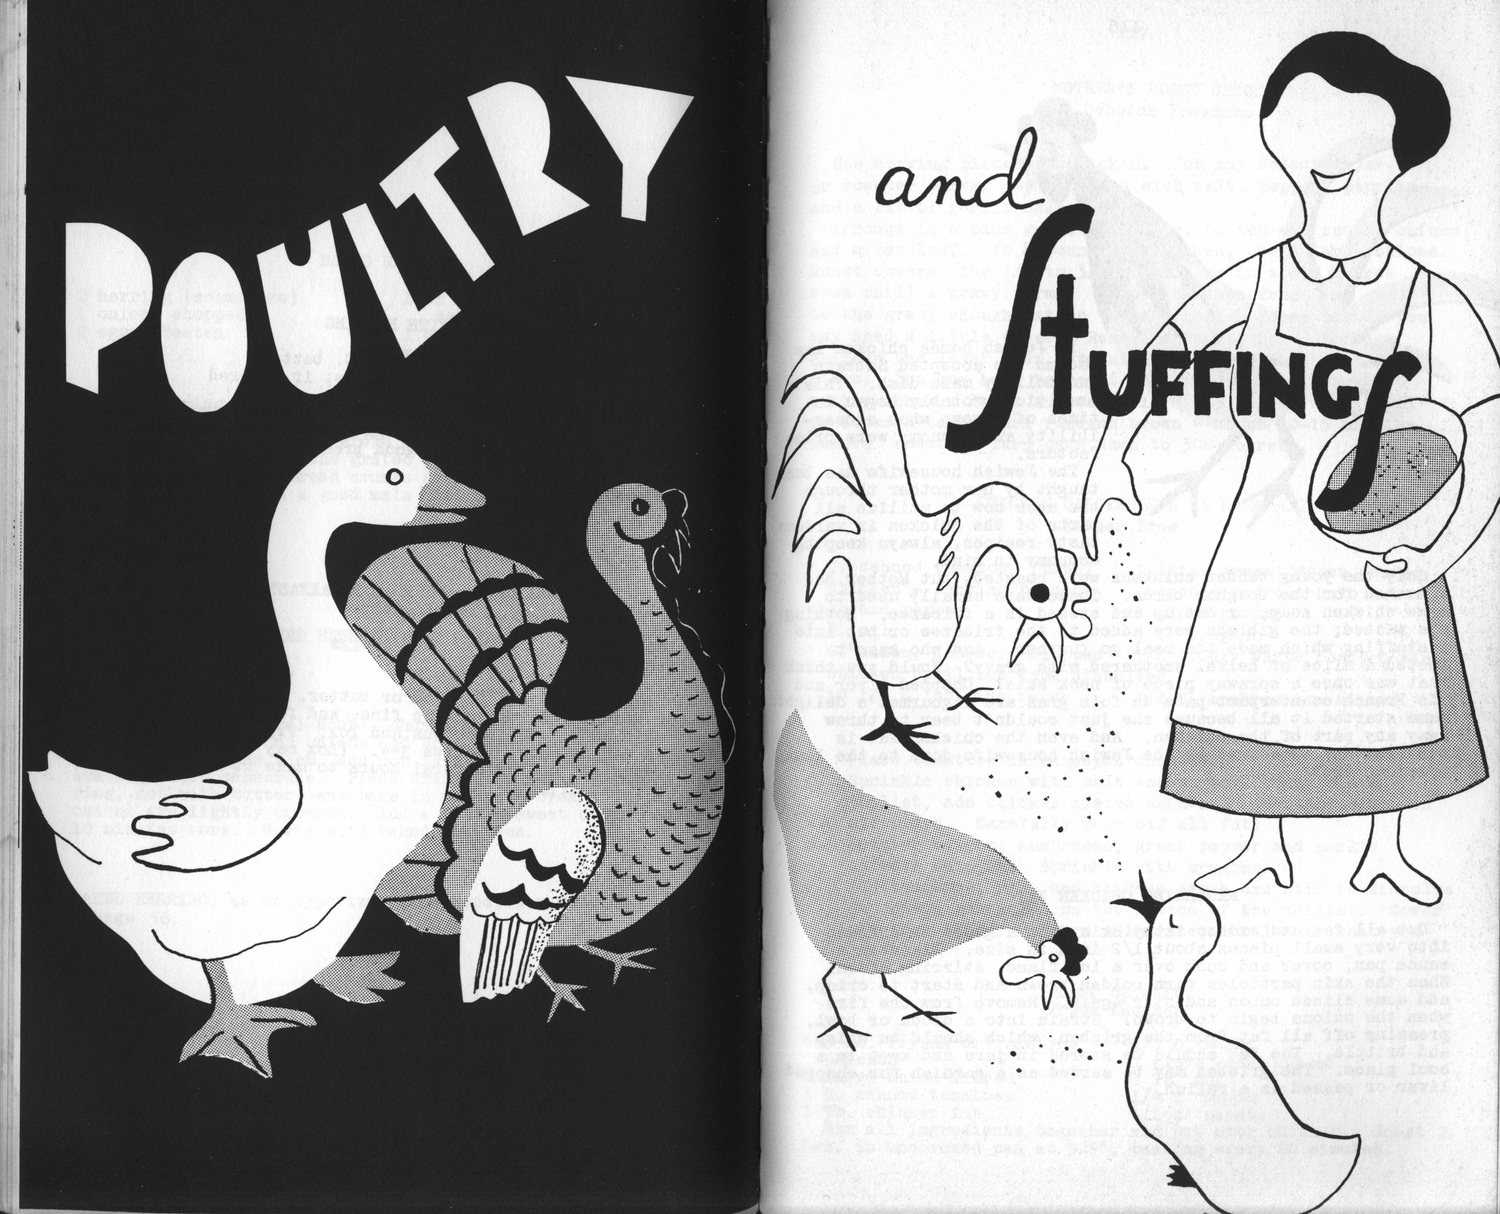 Poultry and Stuffing image